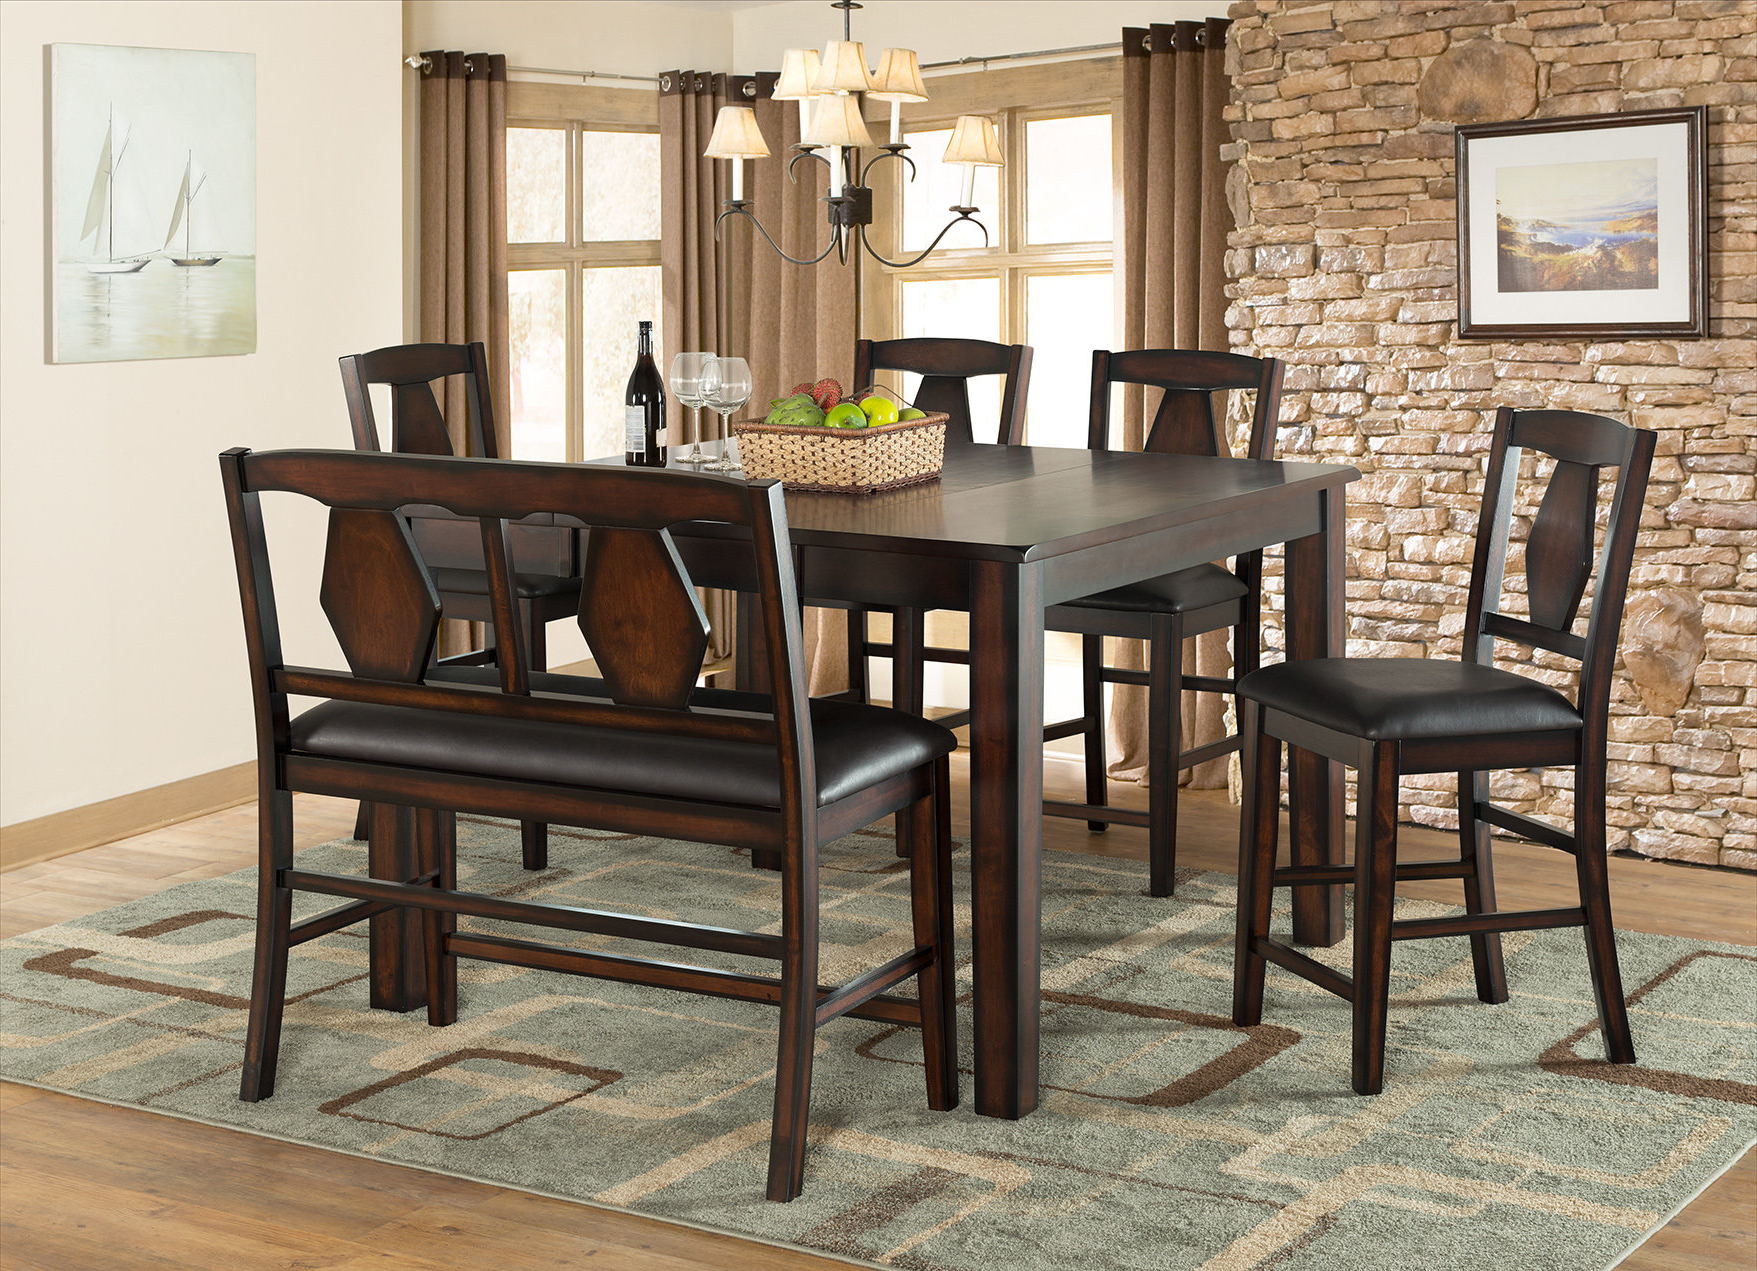 Biggs 5 Piece Counter Height Solid Wood Dining Sets (set Of 5) For 2017 Vilohomeinc. Tuscan Hills Extendable Dining Table & Reviews (Gallery 8 of 20)